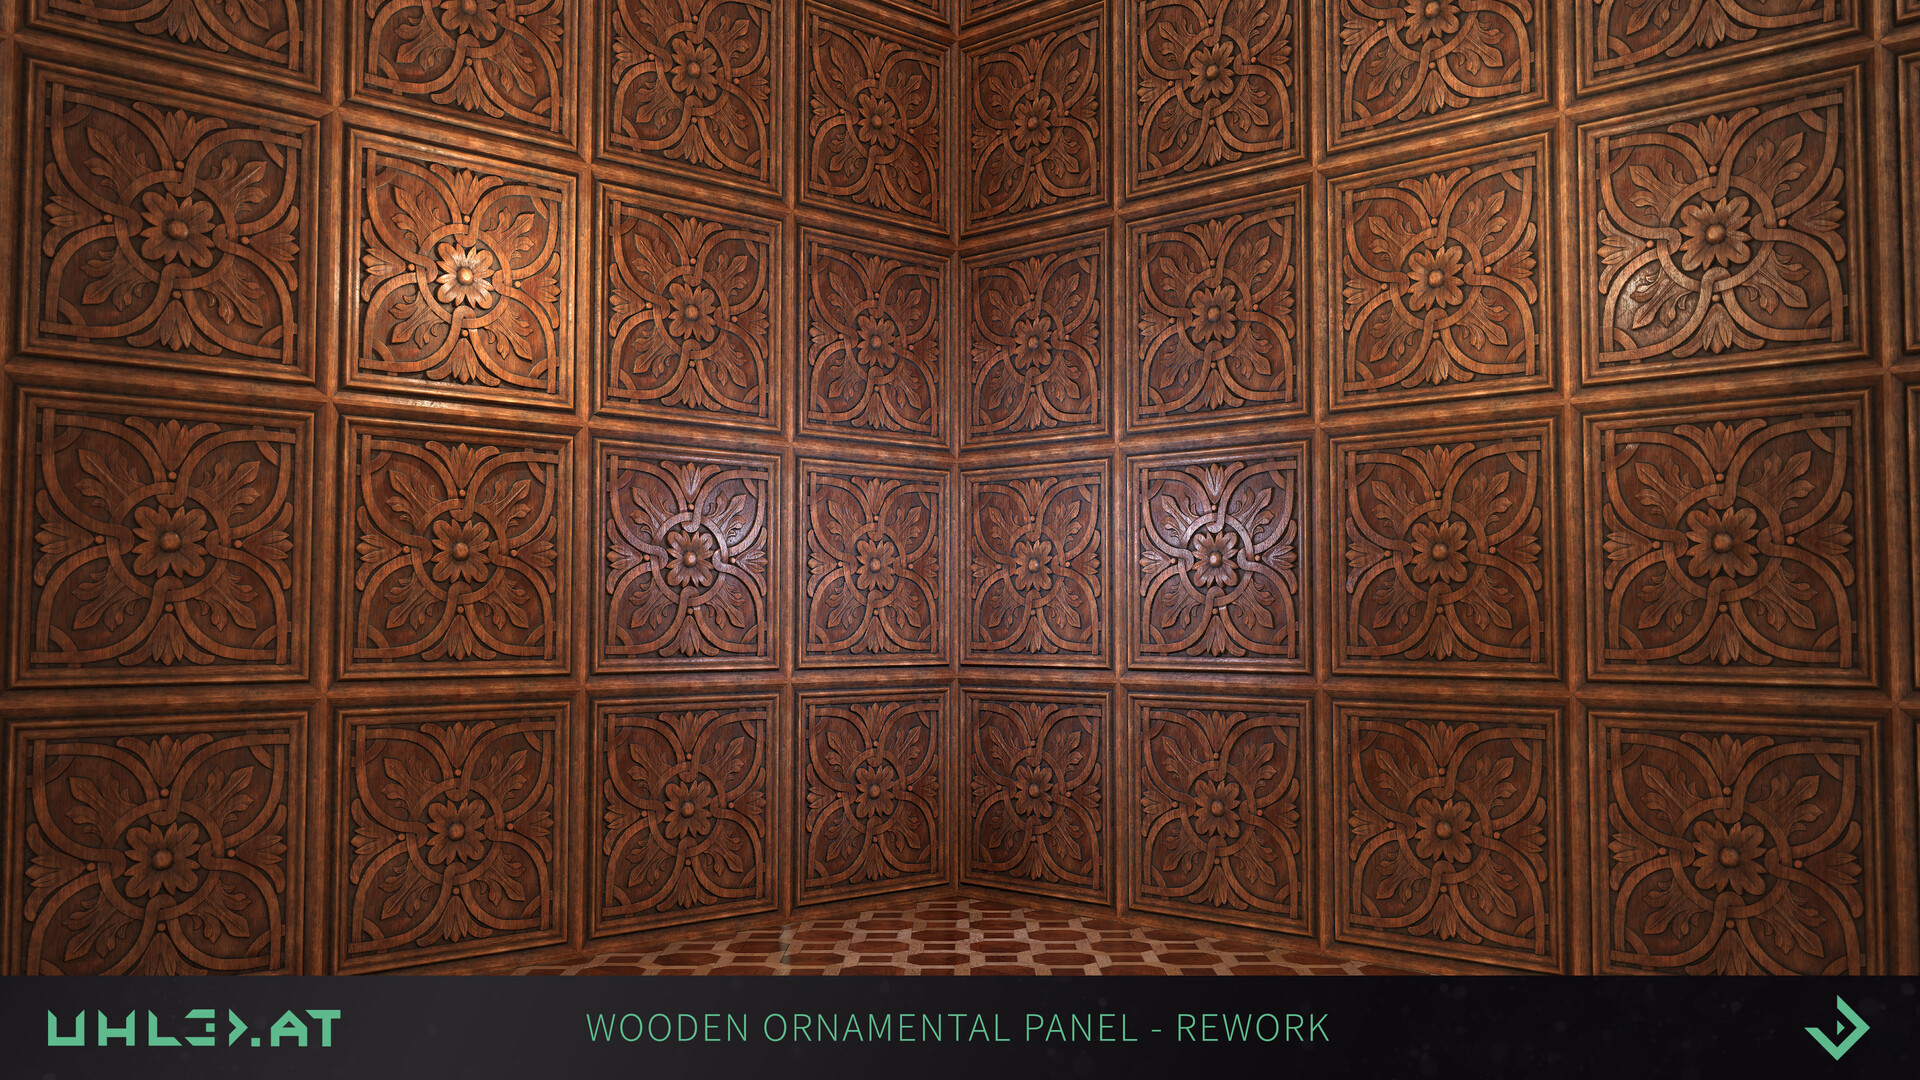 Dominik uhl wood panel ornament rework 06